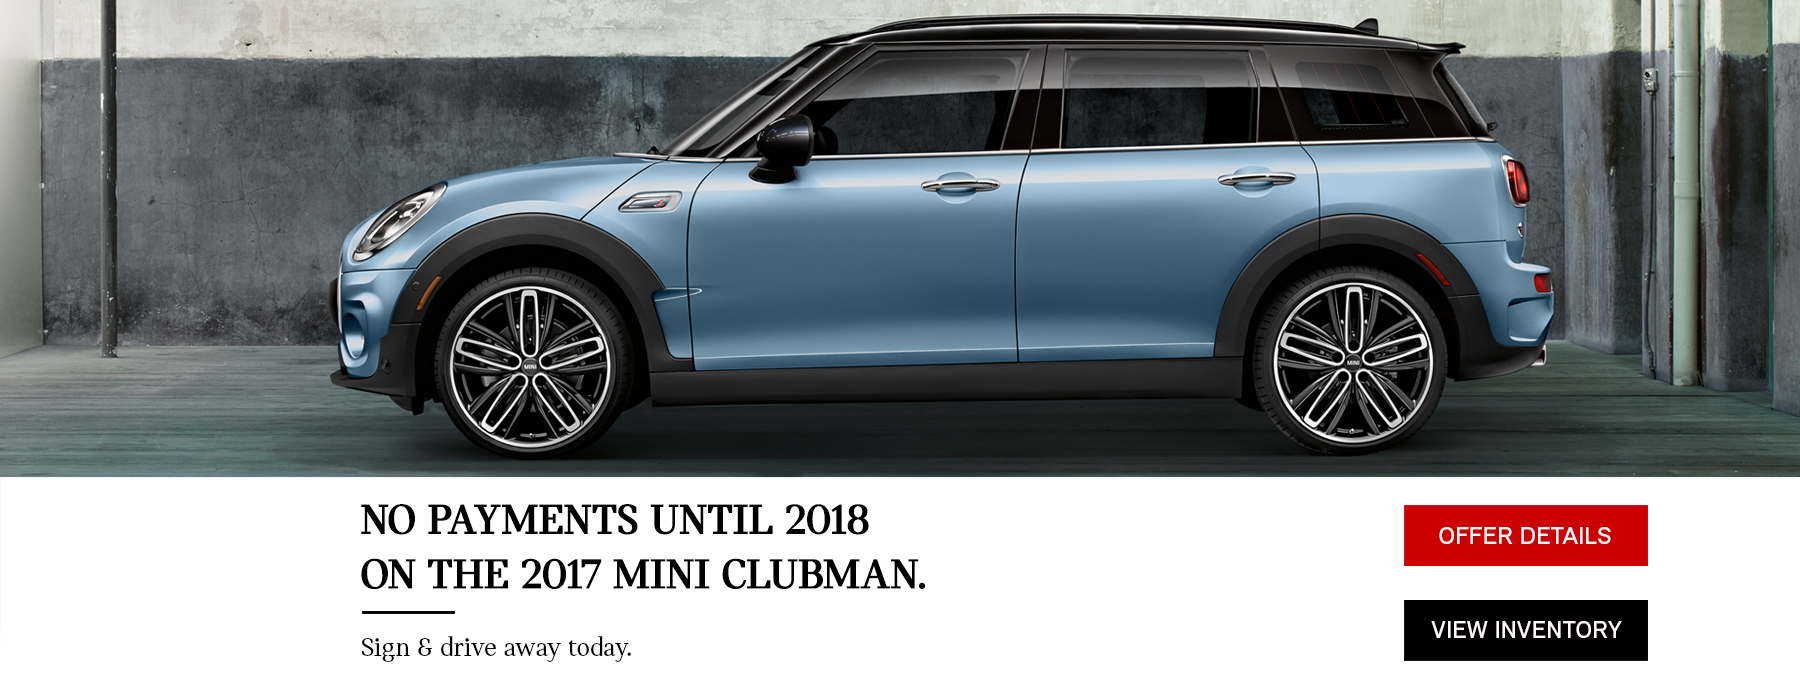 MINI-Clubman-Offer_1800x700